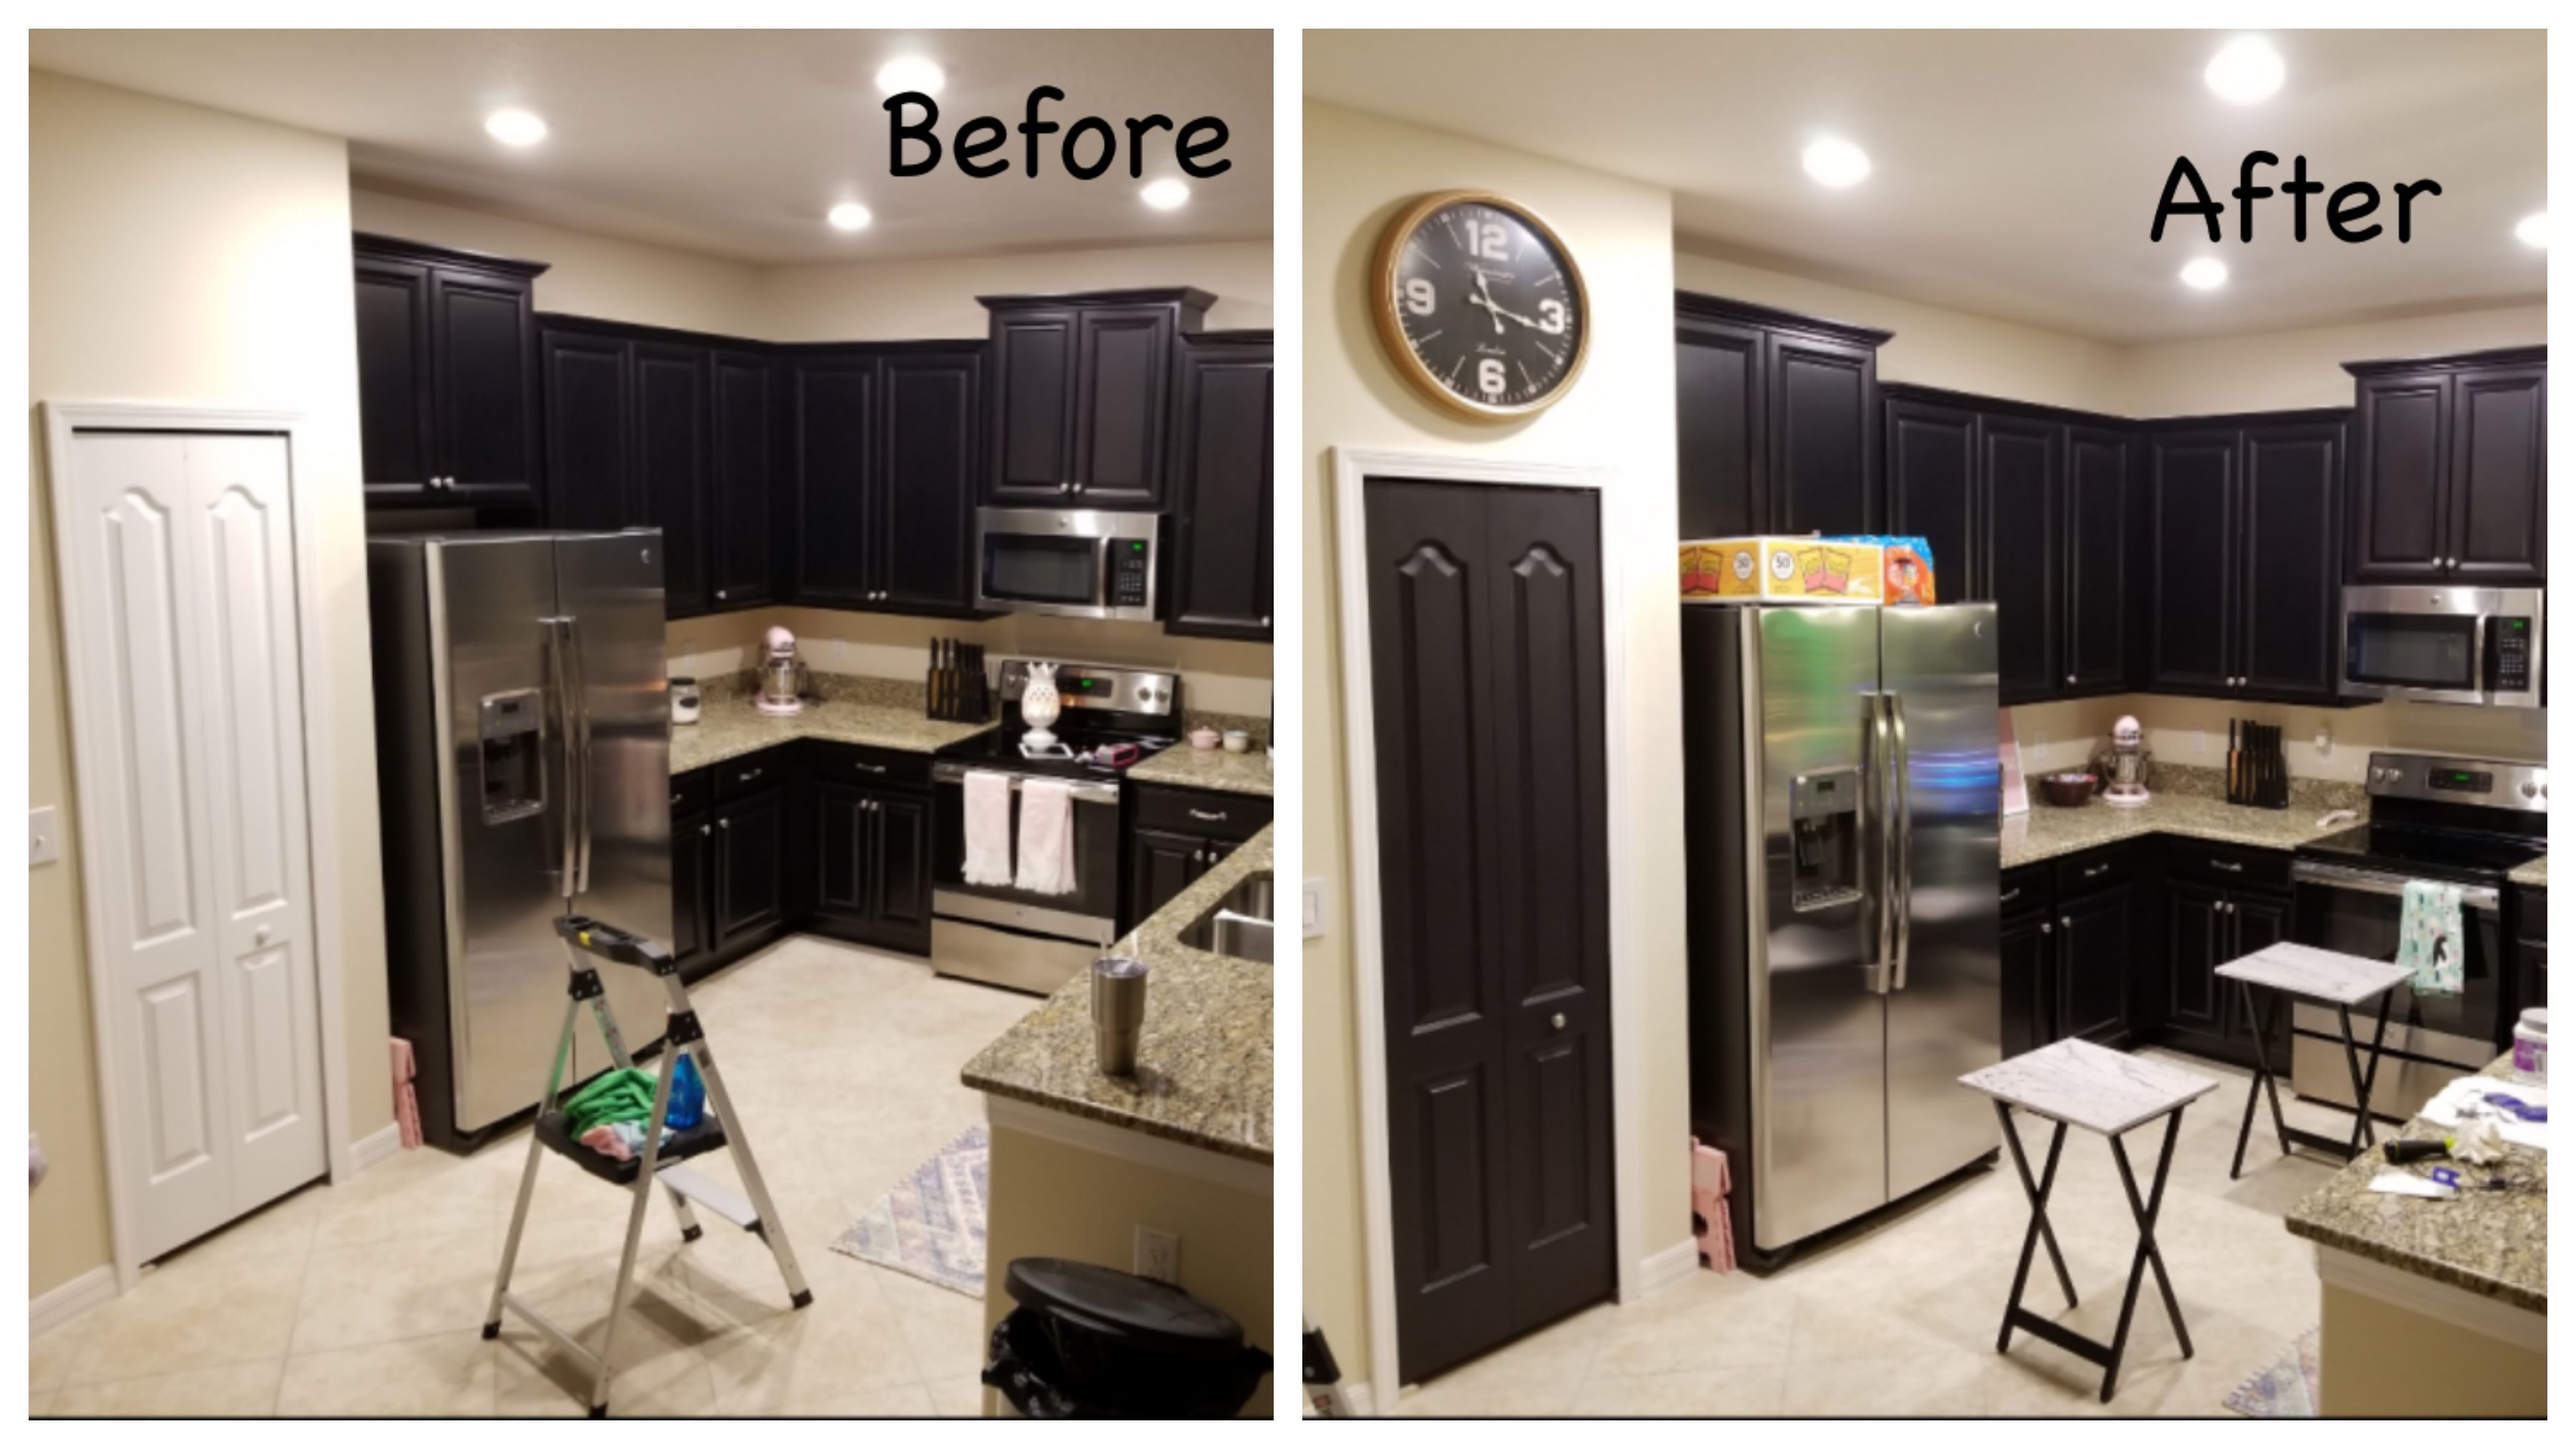 Easy Diy Home Upgrade Painted Pantry Door Sherwin Williams Deep Forest Brown Painted To Match Dark Espres Dark Kitchen Cabinets Painted Pantry Brown Cabinets